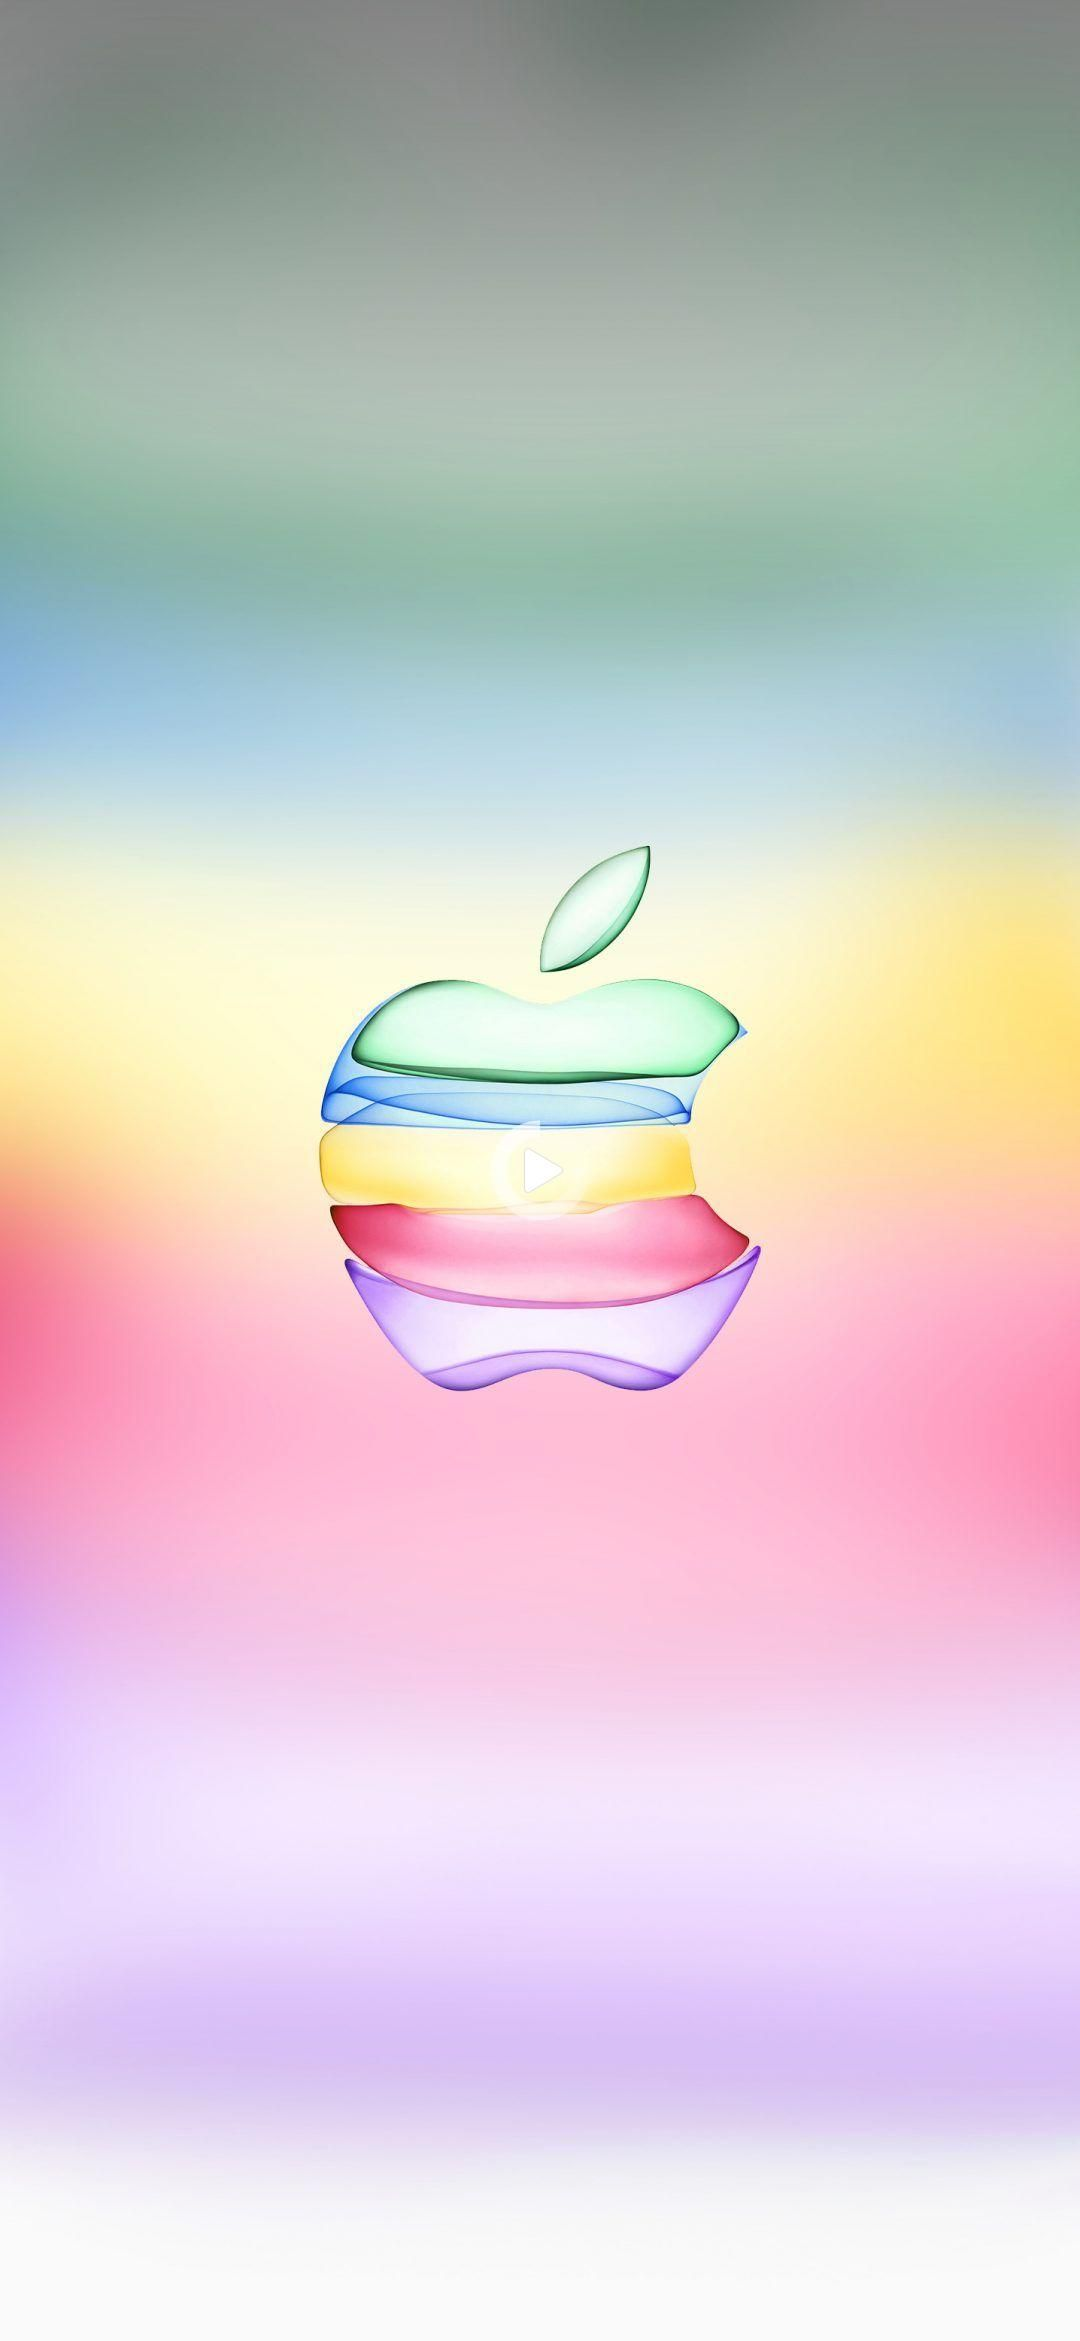 Iphone 11 Wallpapers Cool Backgrounds In 2021 Apple Logo Wallpaper Iphone Apple Iphone Wallpaper Hd Iphone Wallpaper Ios